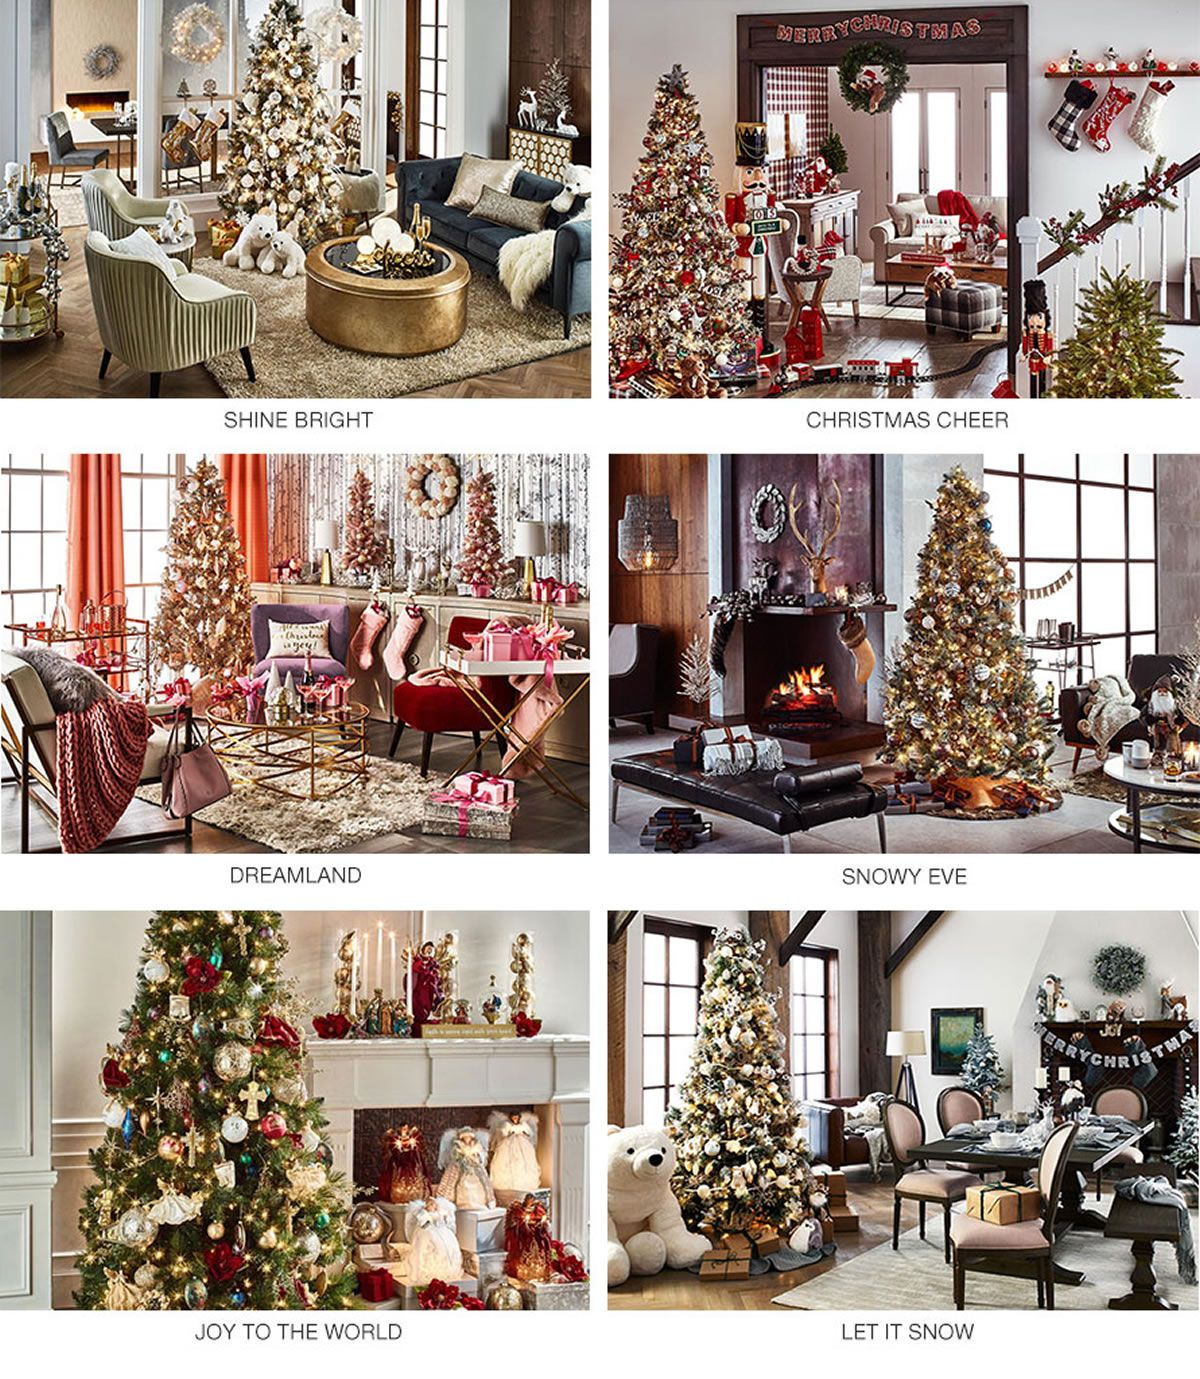 shine bright christmas cheer dreamland snowy eve joy to the world - American Sales Christmas Decorations